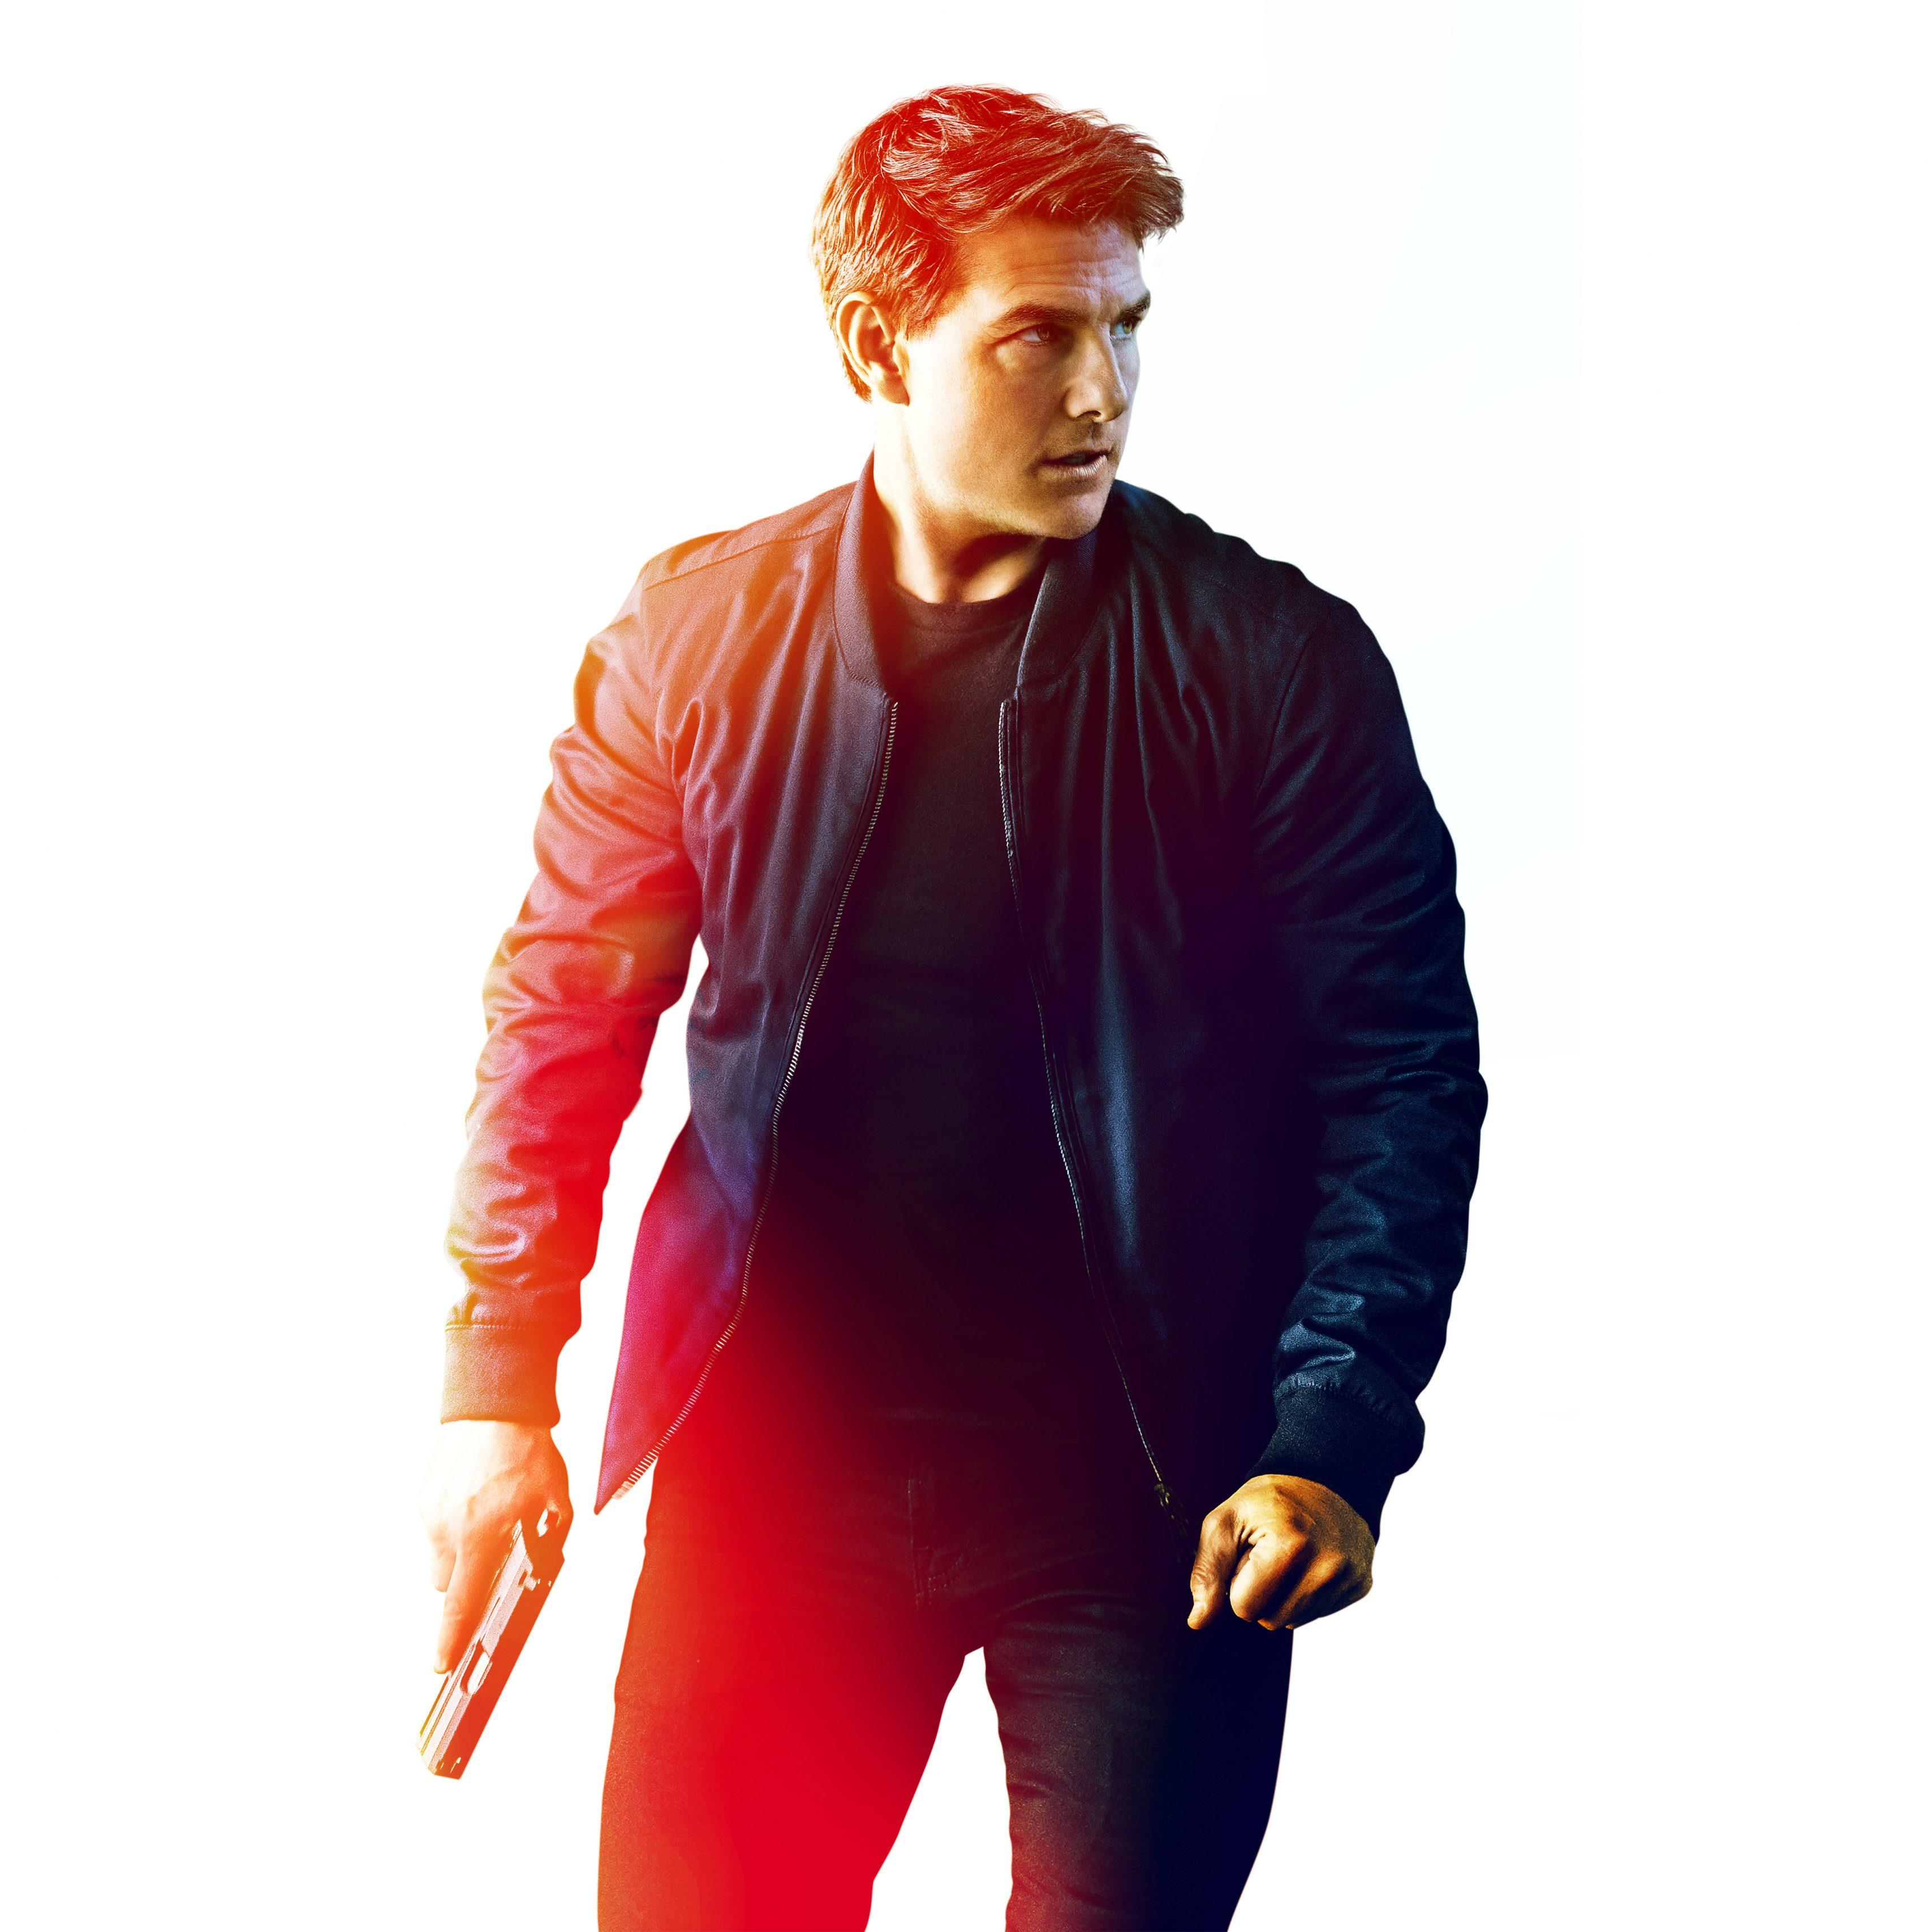 Mission Impossible 6 Wallpapers Wallpaper Cave